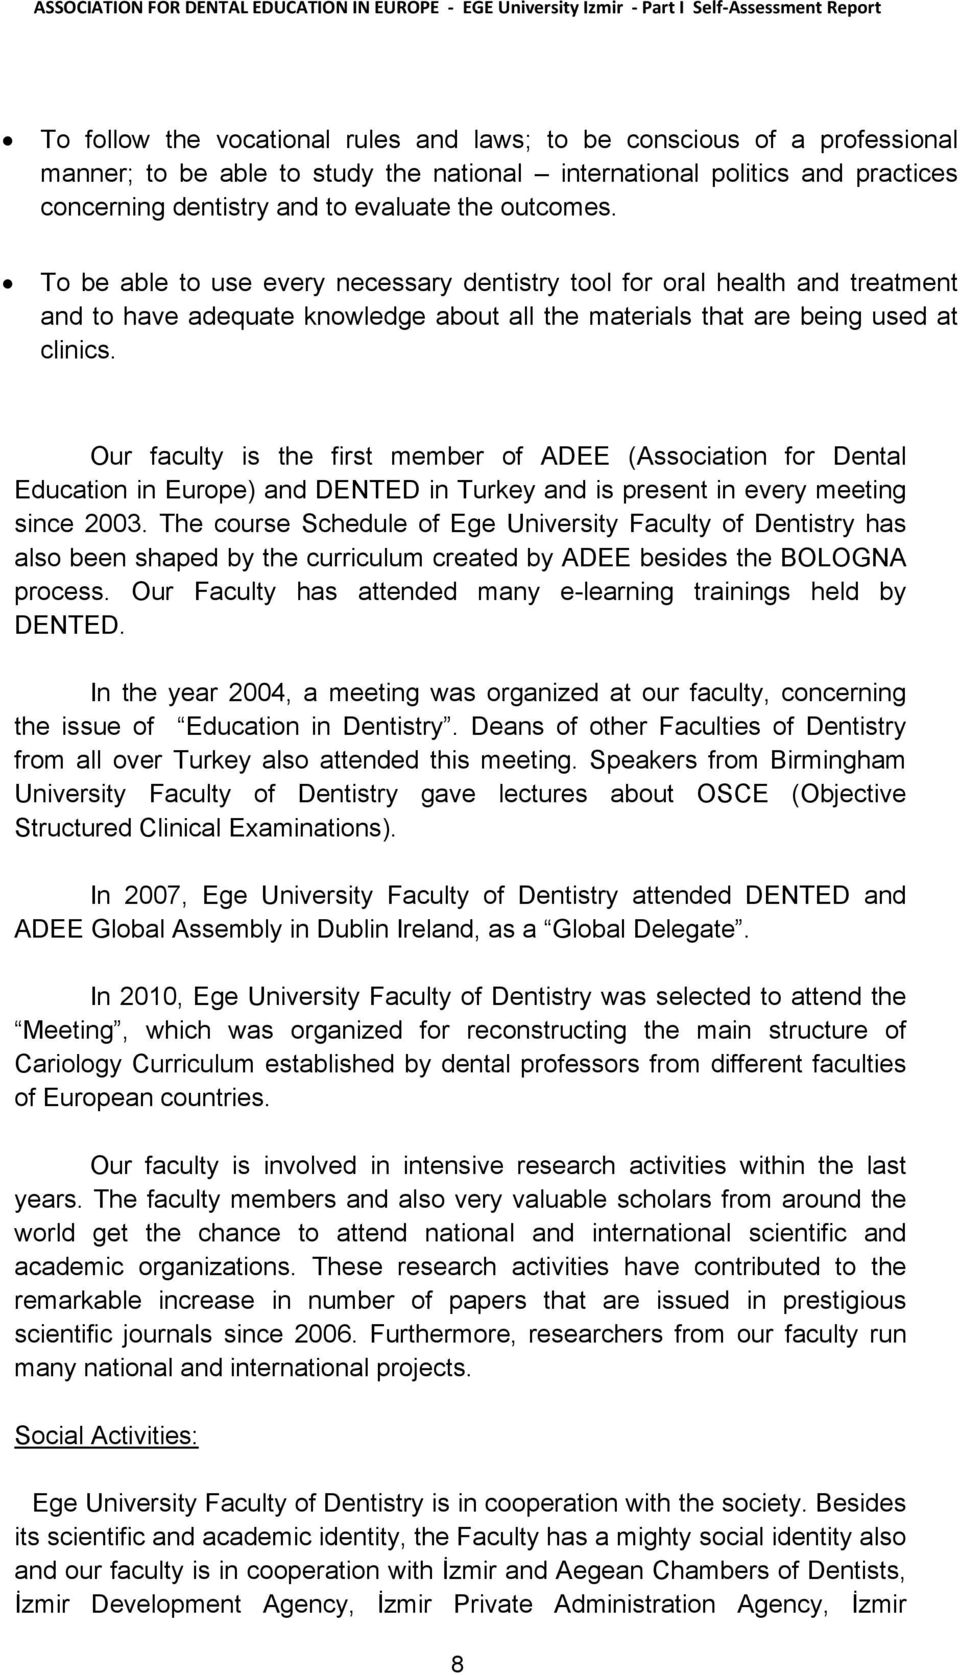 Our faculty is the first member of ADEE (Association for Dental Education in Europe) and DENTED in Turkey and is present in every meeting since 2003.